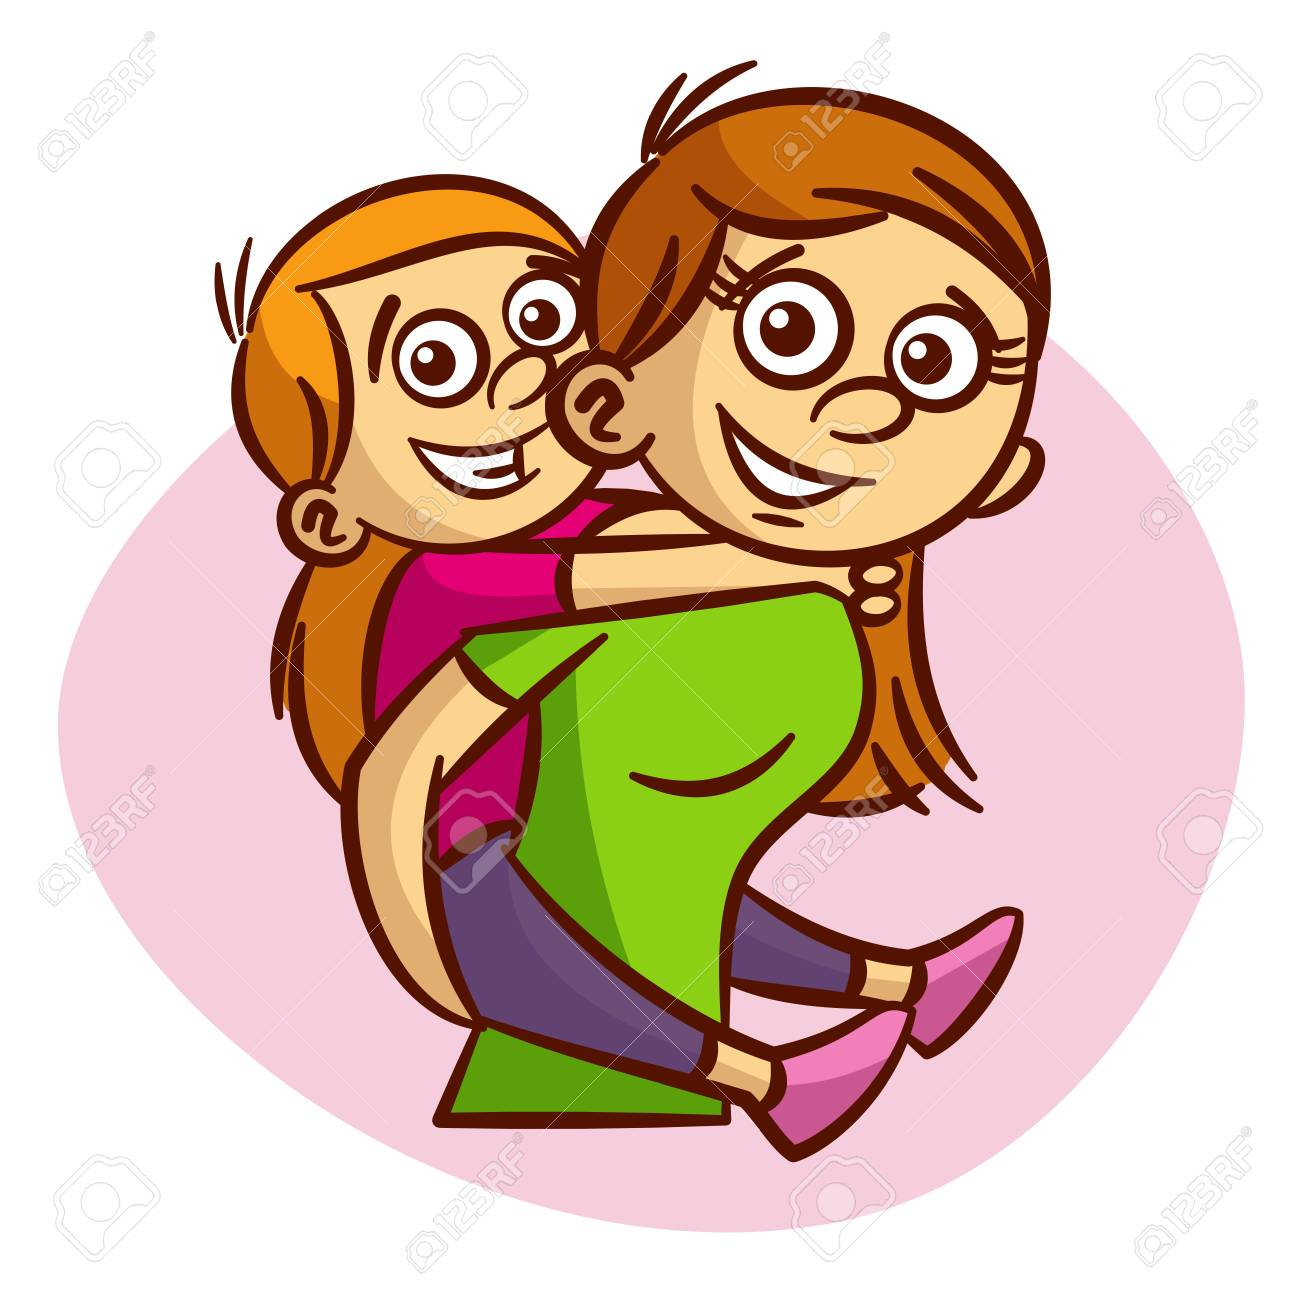 hight resolution of mother and child having fun clipart stock vector 61633188